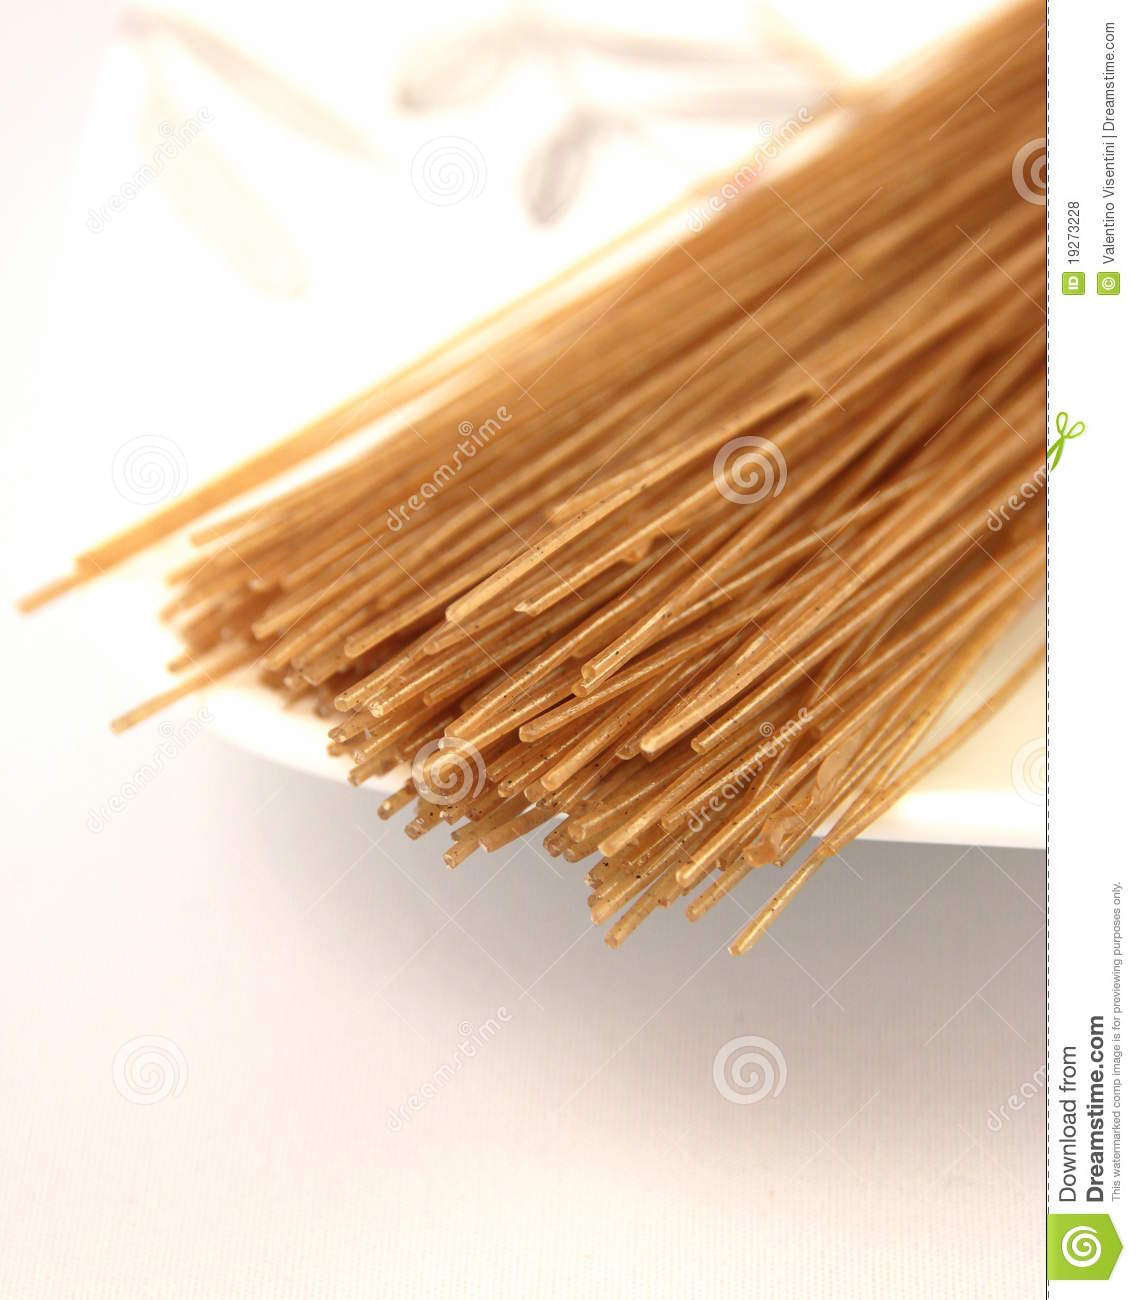 Whole Wheat Oriental Noodles Royalty Free Stock Photos   Image